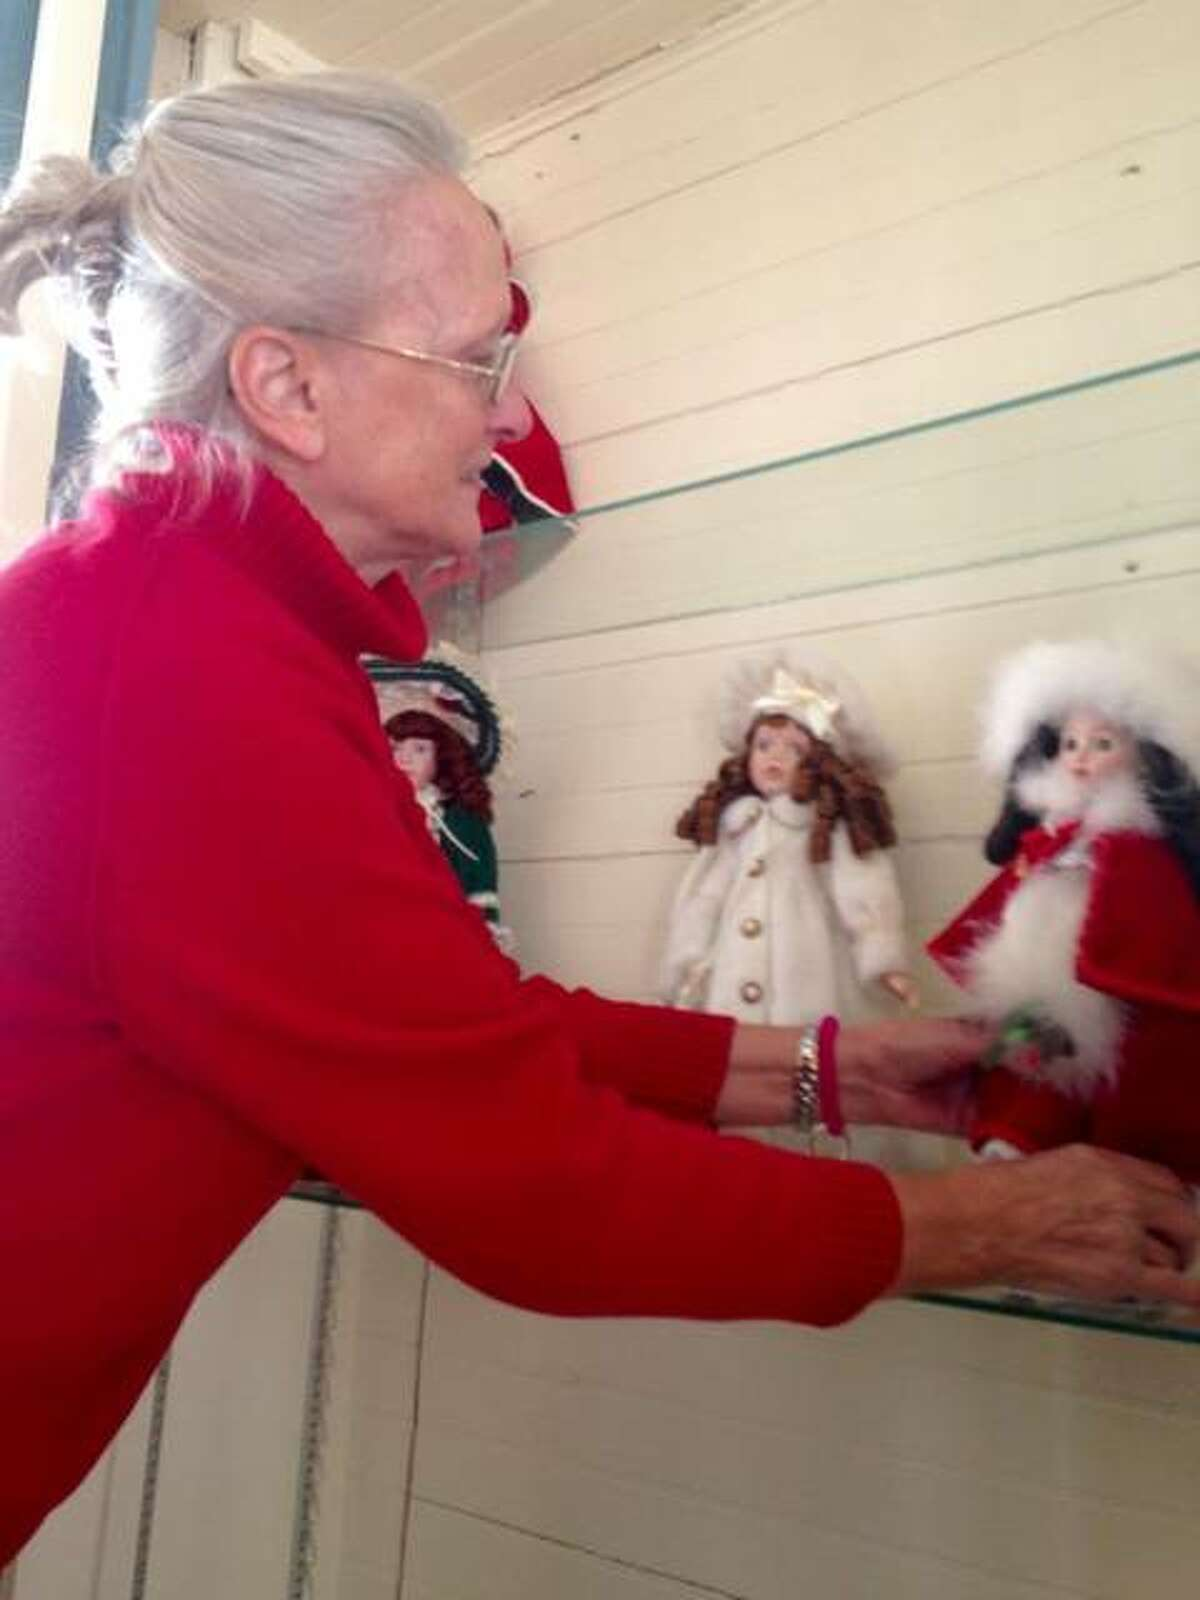 Debbie Schuneman, chairman of the Lucy Haskell Playhouse Association, gently places a doll dressed in fancy attire on a cabinet shelf inside the playhouse while decorating its interior with Victorian Christmas items. Santa will visit the playhouse, 1211 Henry St. in Alton, from noon to 2 p.m. on Dec. 2.